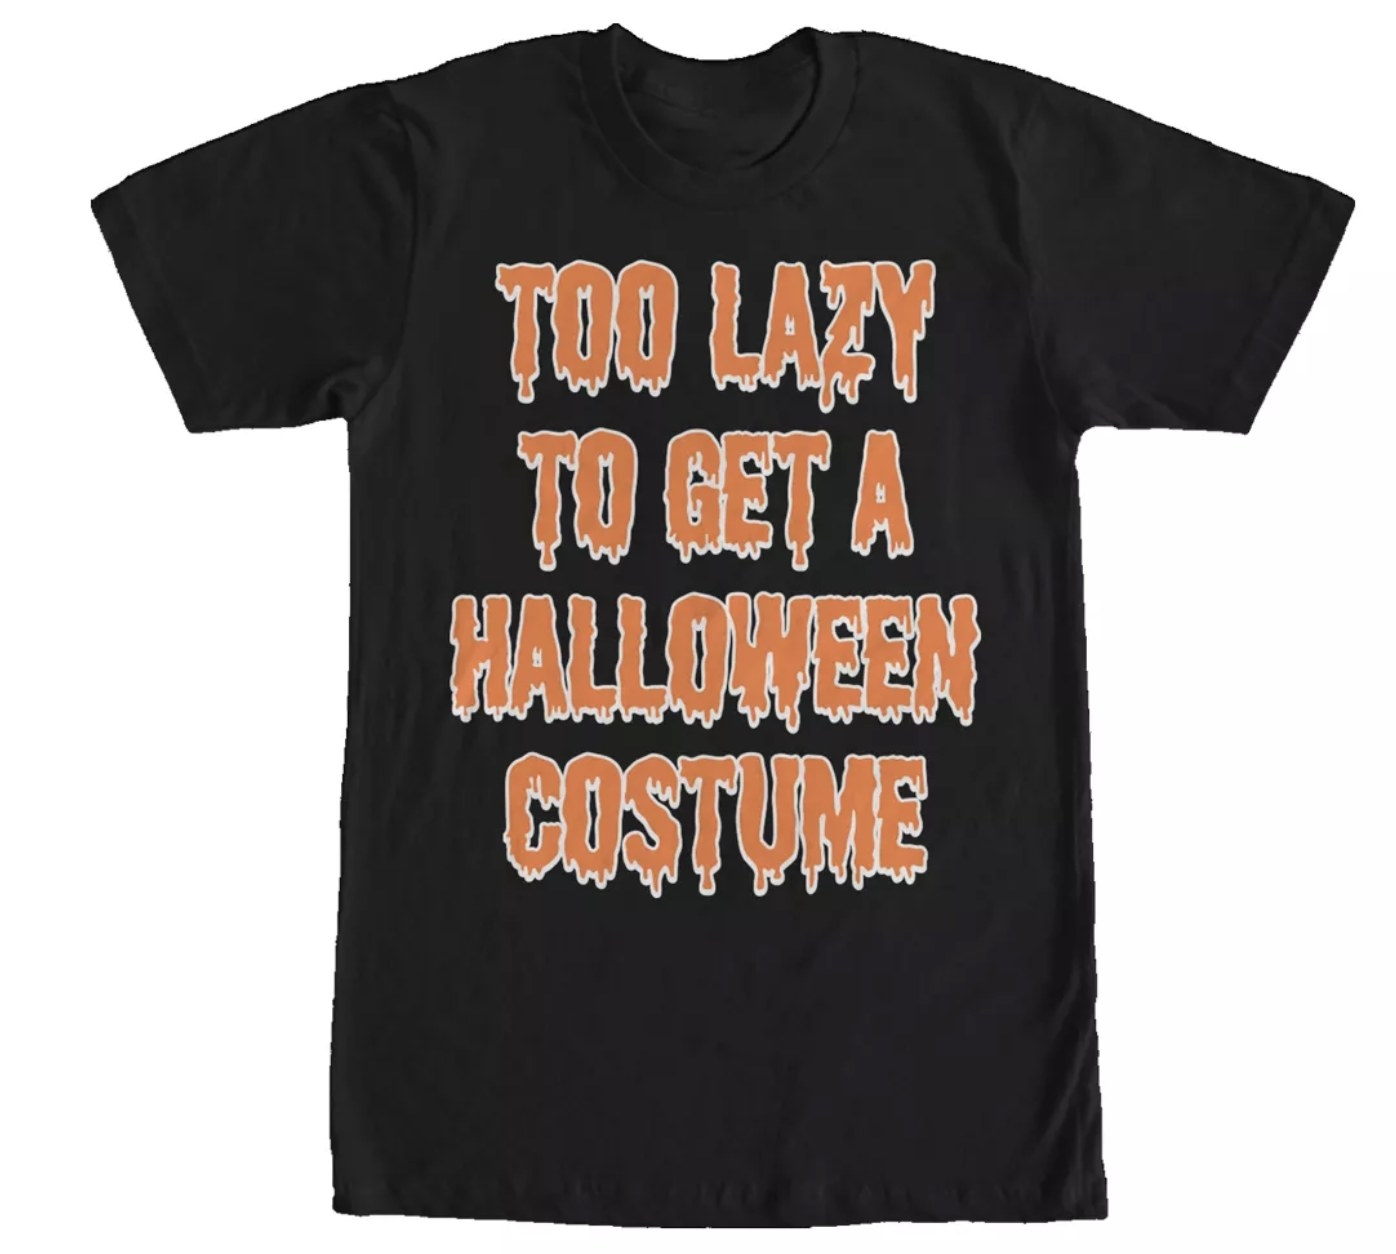 Too Lazy To Get A Halloween Costume graphic tee